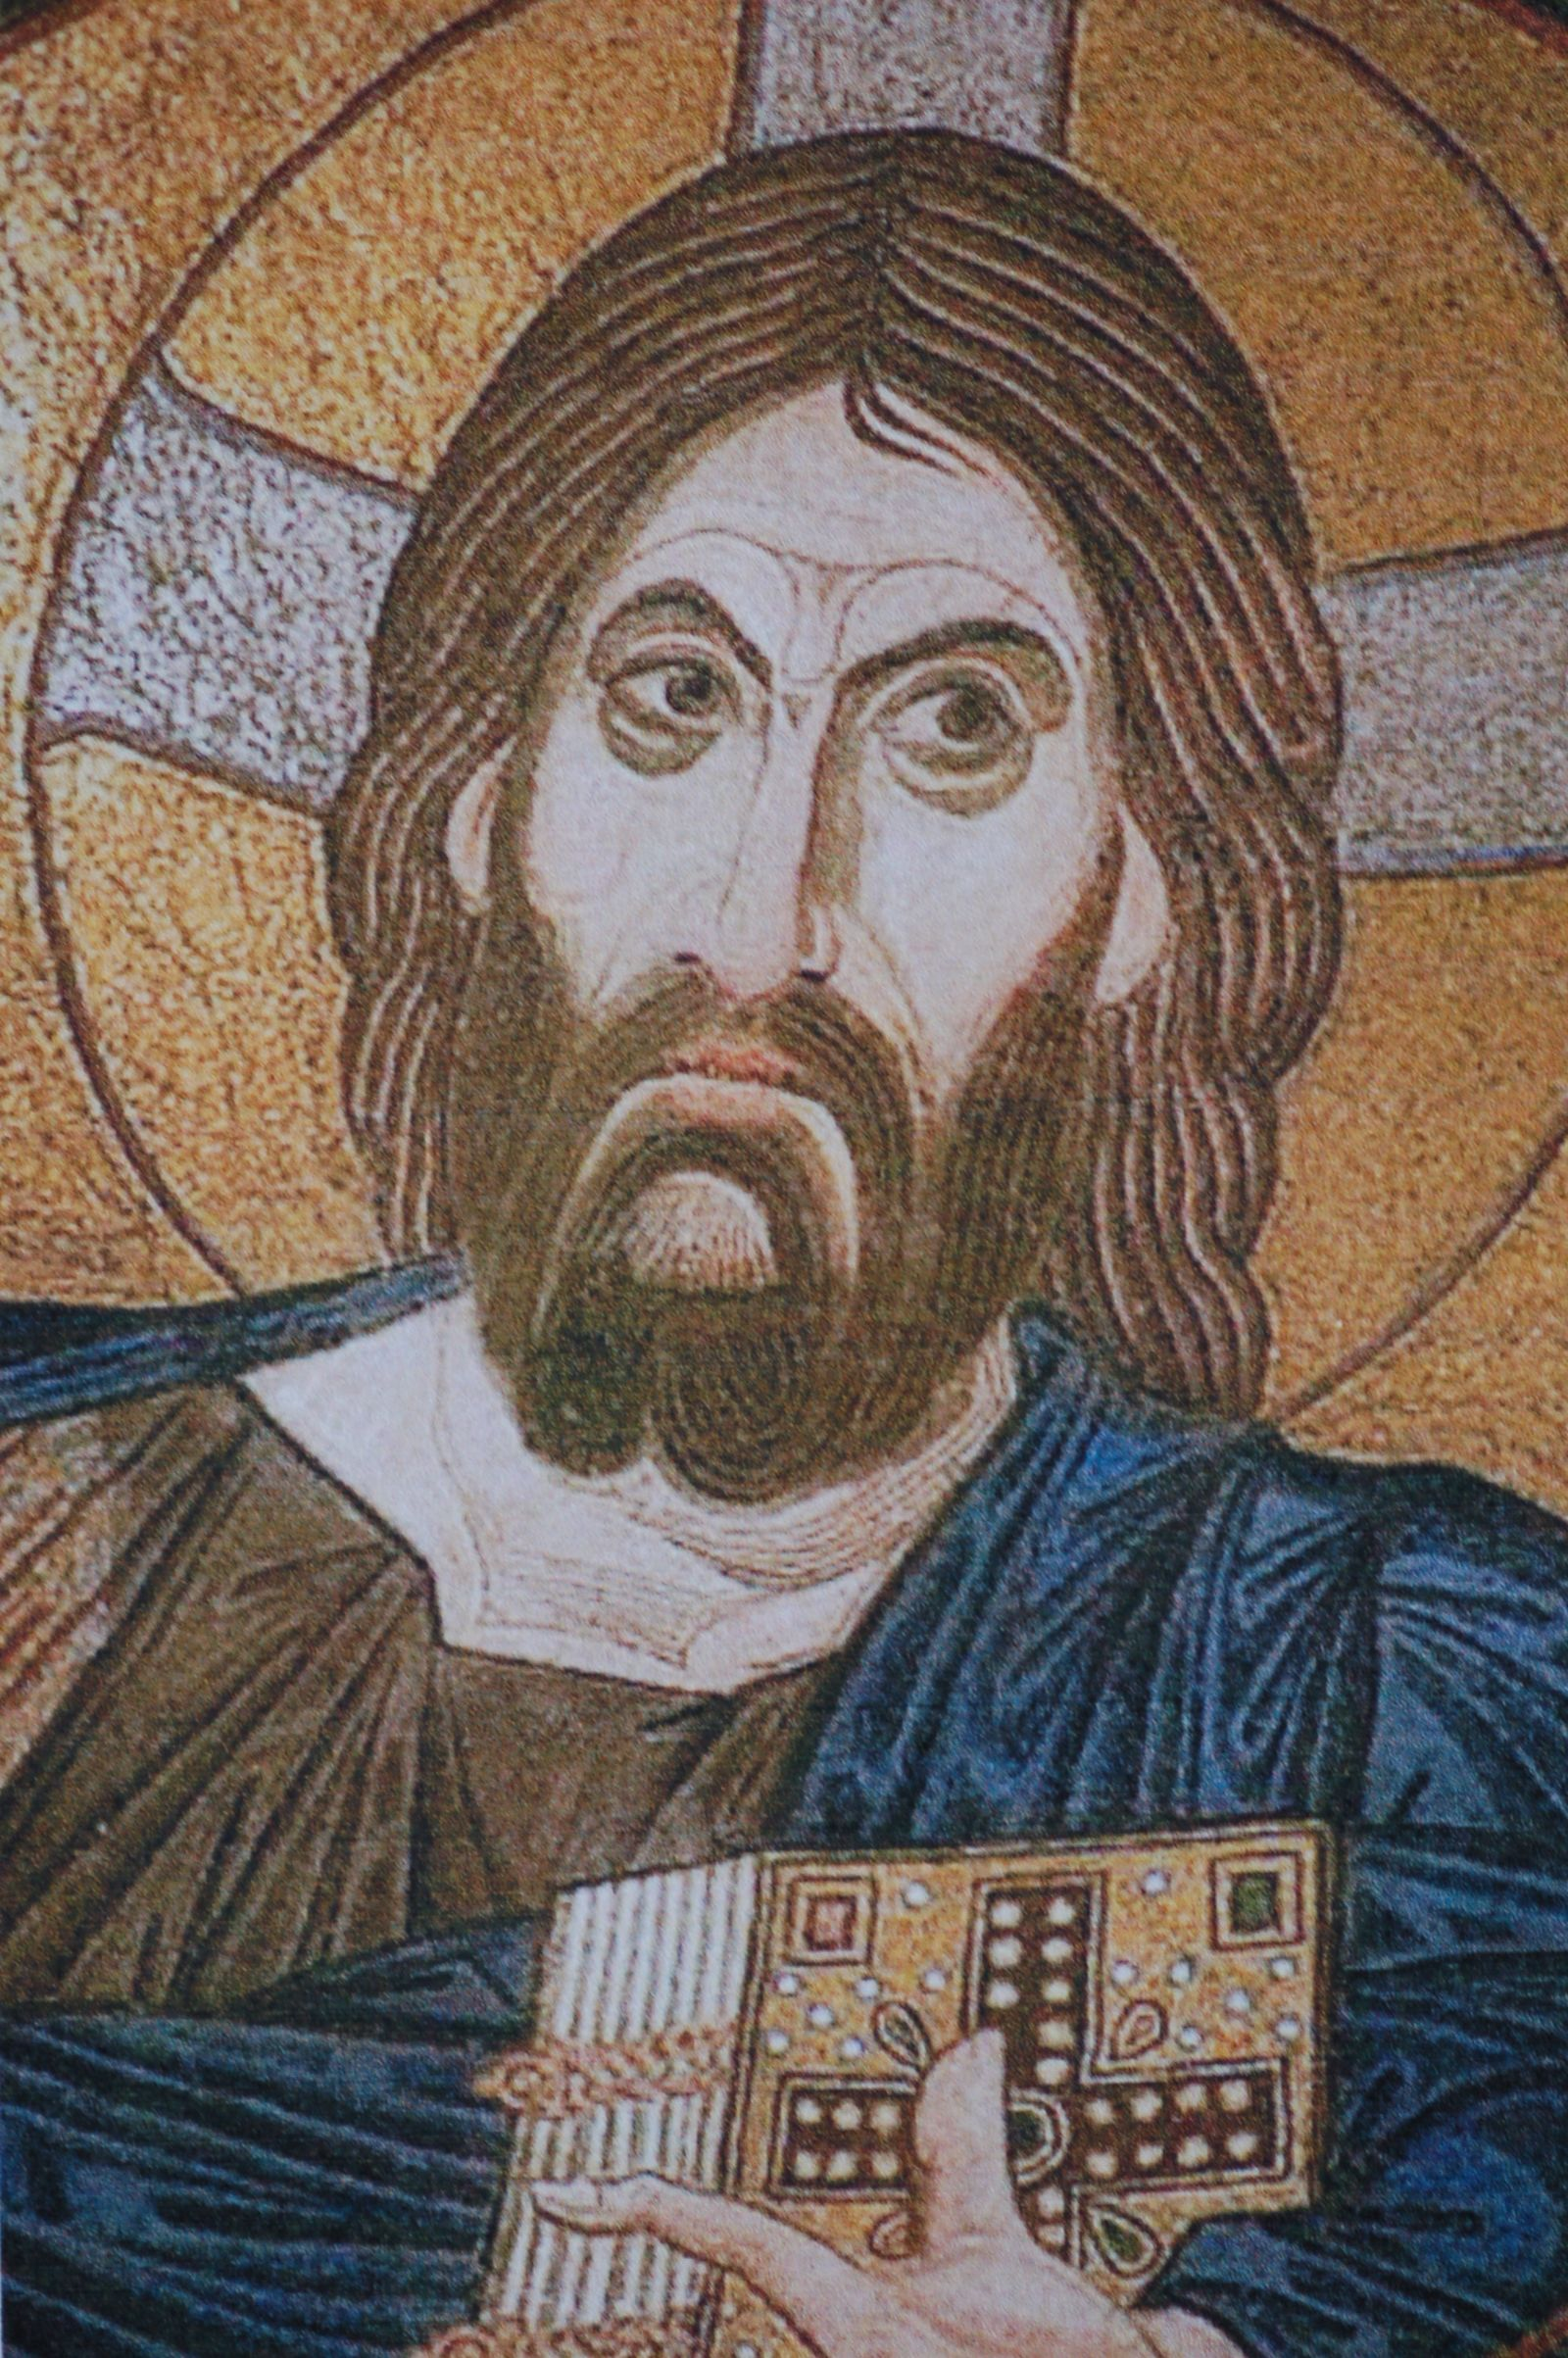 Photo 12: Icon Jesus with Markings 3 and 4